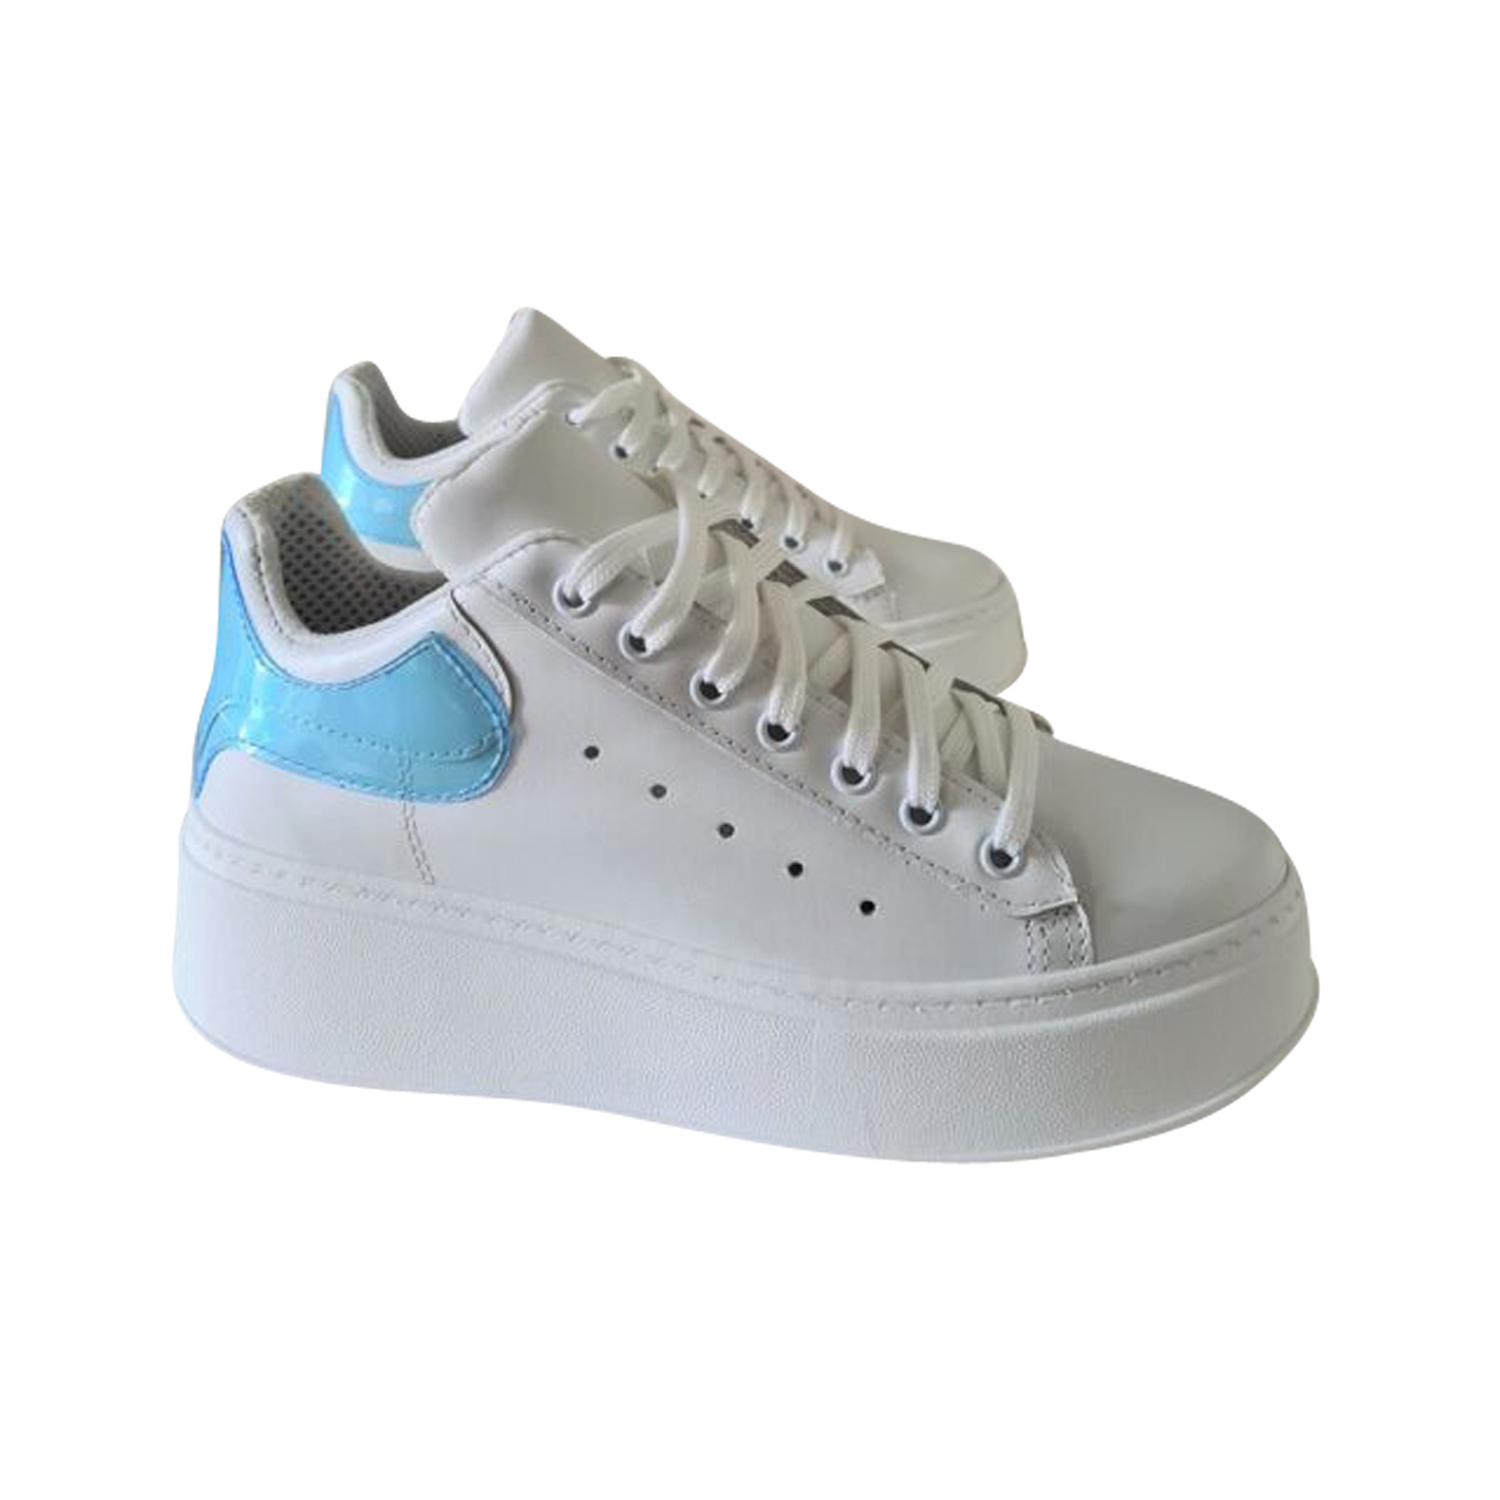 JAMMERS LONDON SNEAKERS TOTAL BIANCO/CELESTE